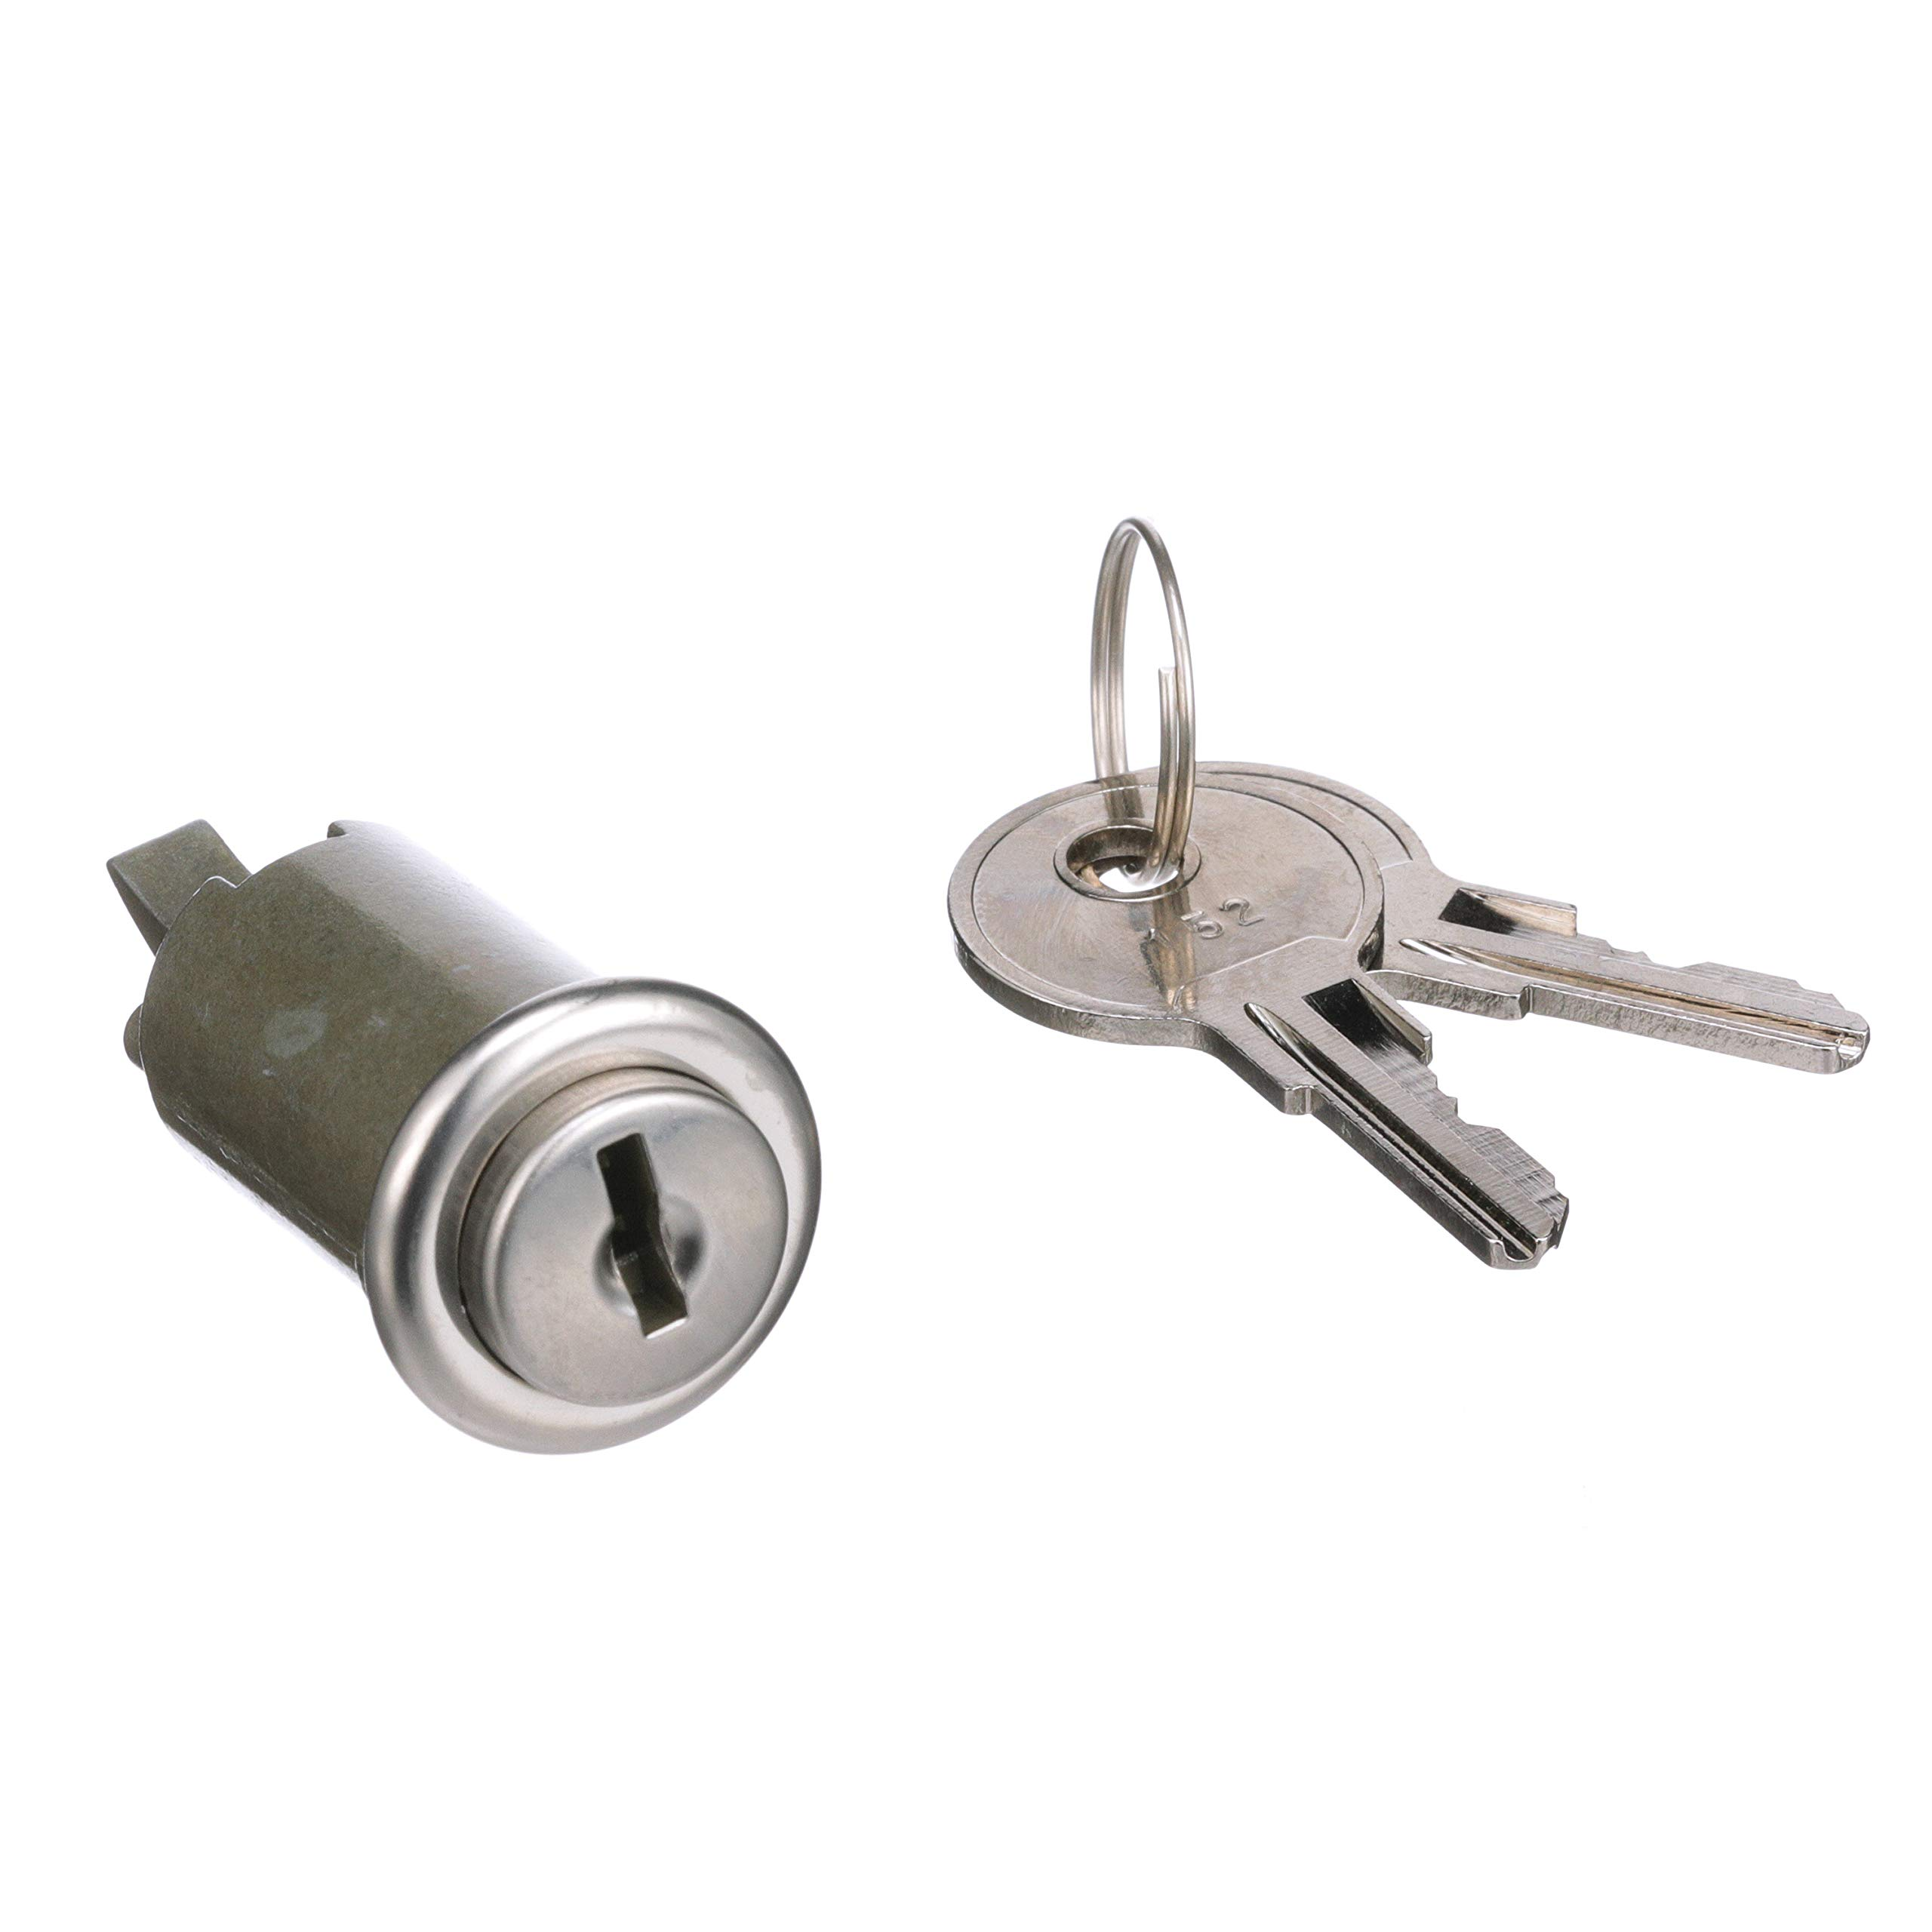 Button Lock With Key For Motorcycle Boat Holder Storage Lock Locker Glove Box To